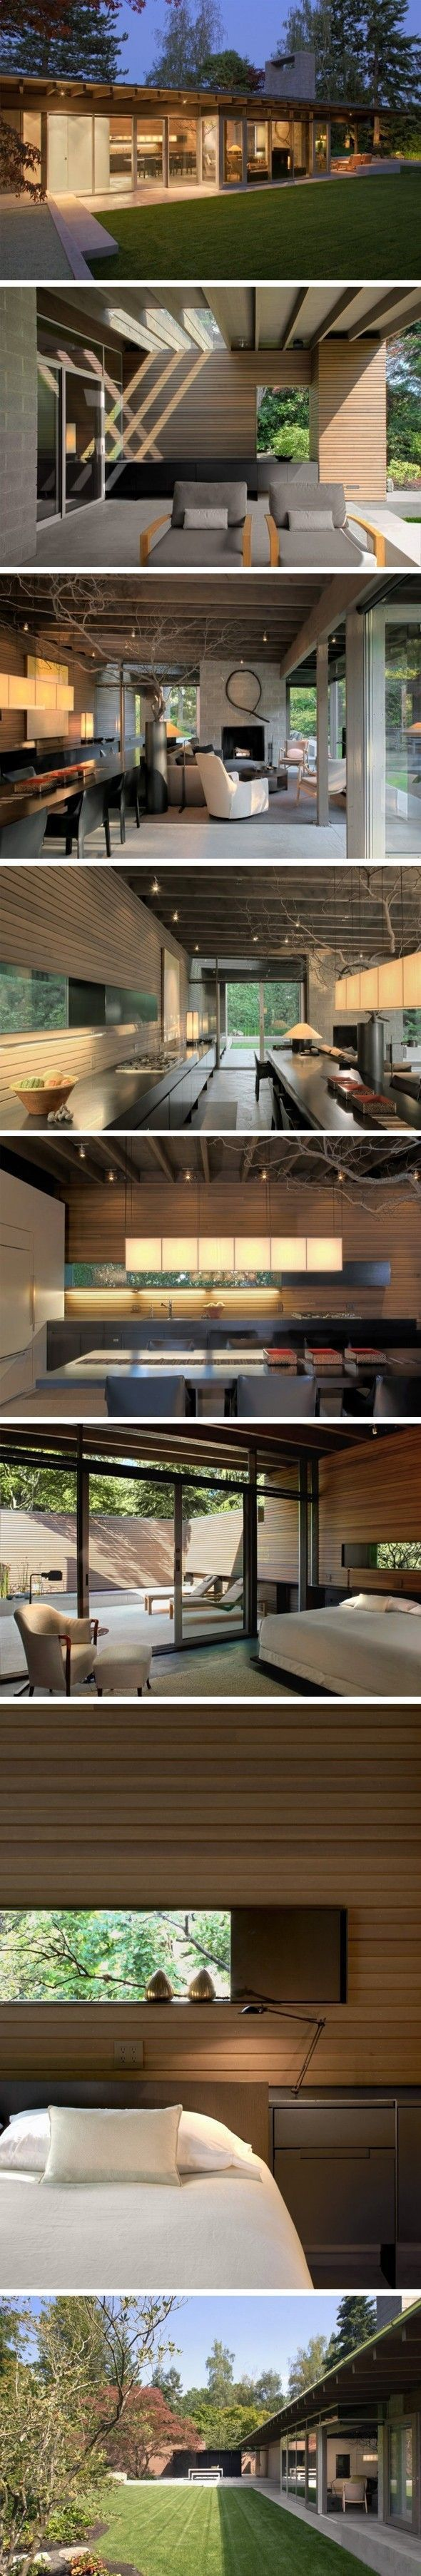 container home designers%0A Container House  Urban Suyama Peterson Deguchi by Cabin  Journal of Design  Who Else Wants